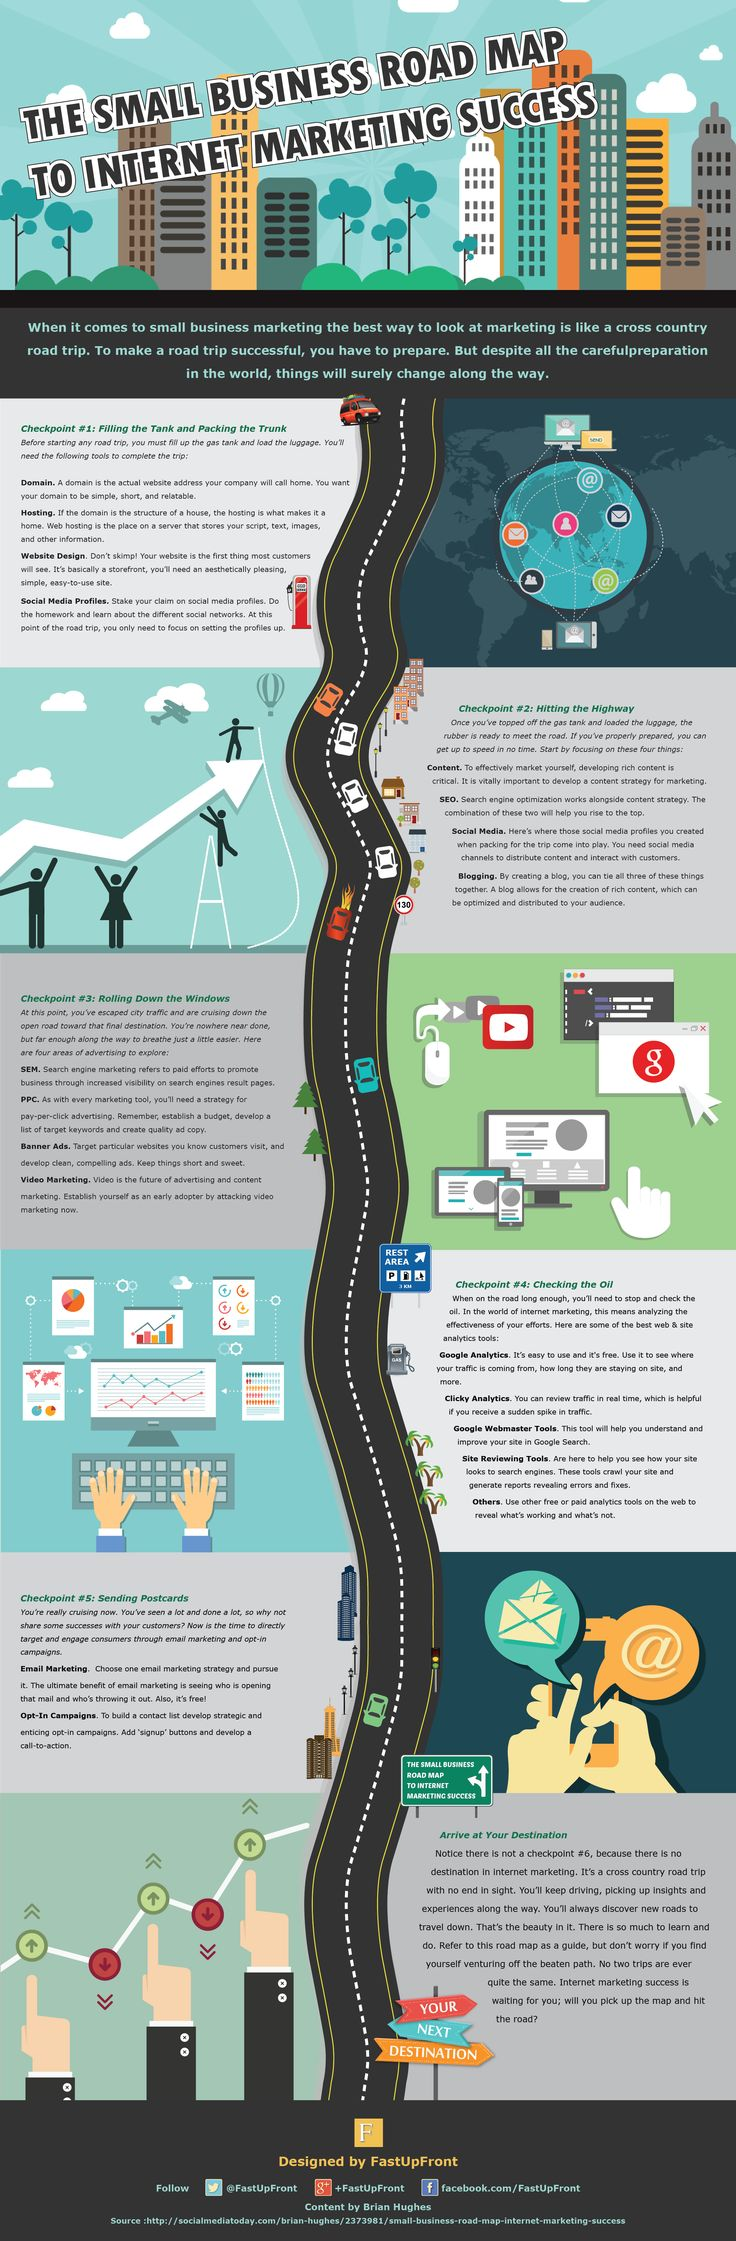 Infographic: The Small Business Road Map to Internet Marketing Success #infographic